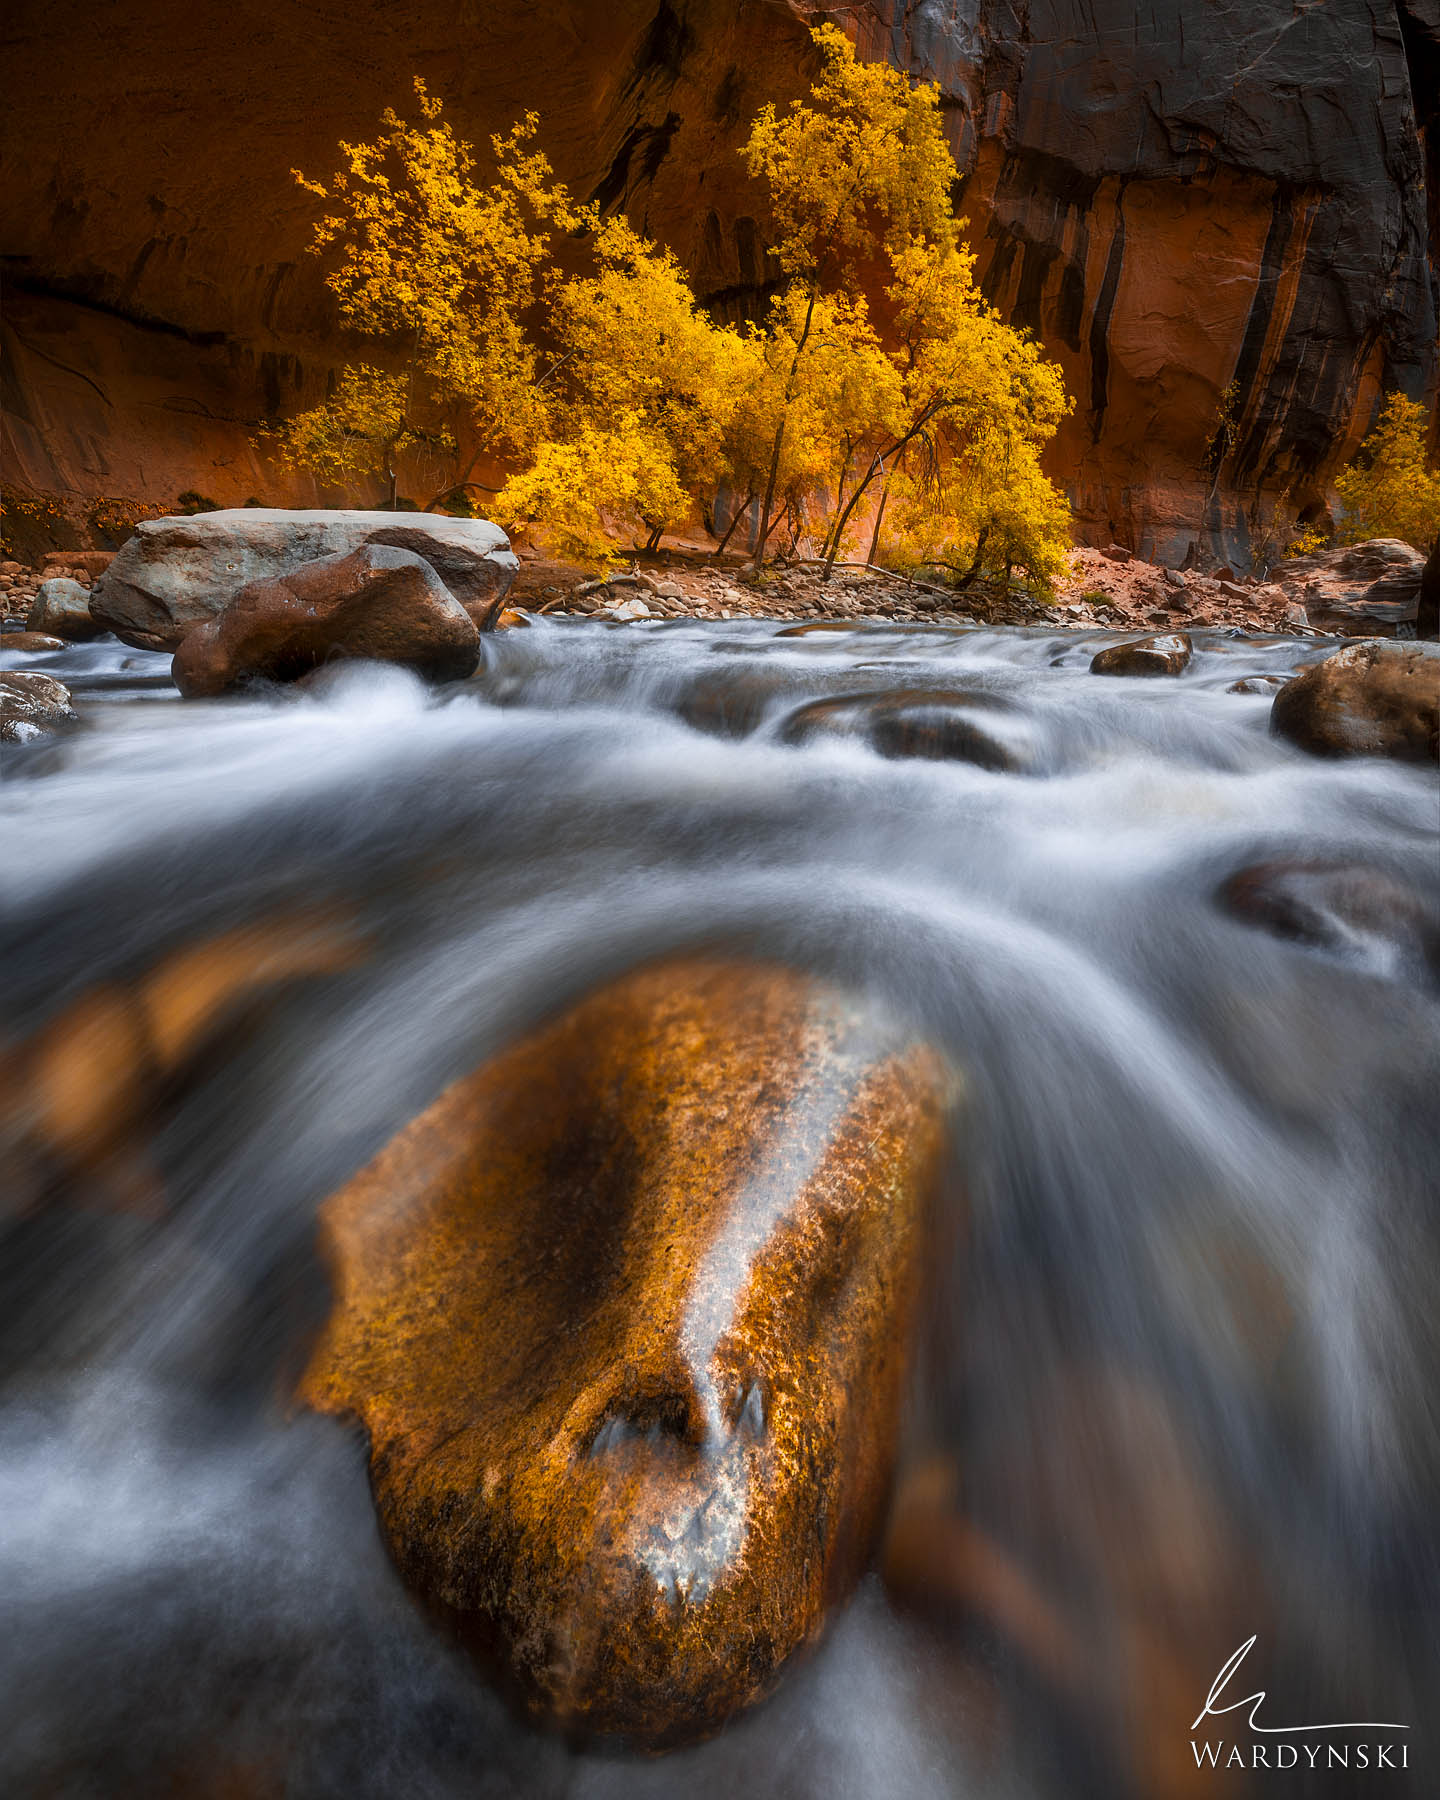 Fie Art Print | Limited Edition of 100 Water rushes down the Virgin River in Zion National Park, Utah. These waters have been...